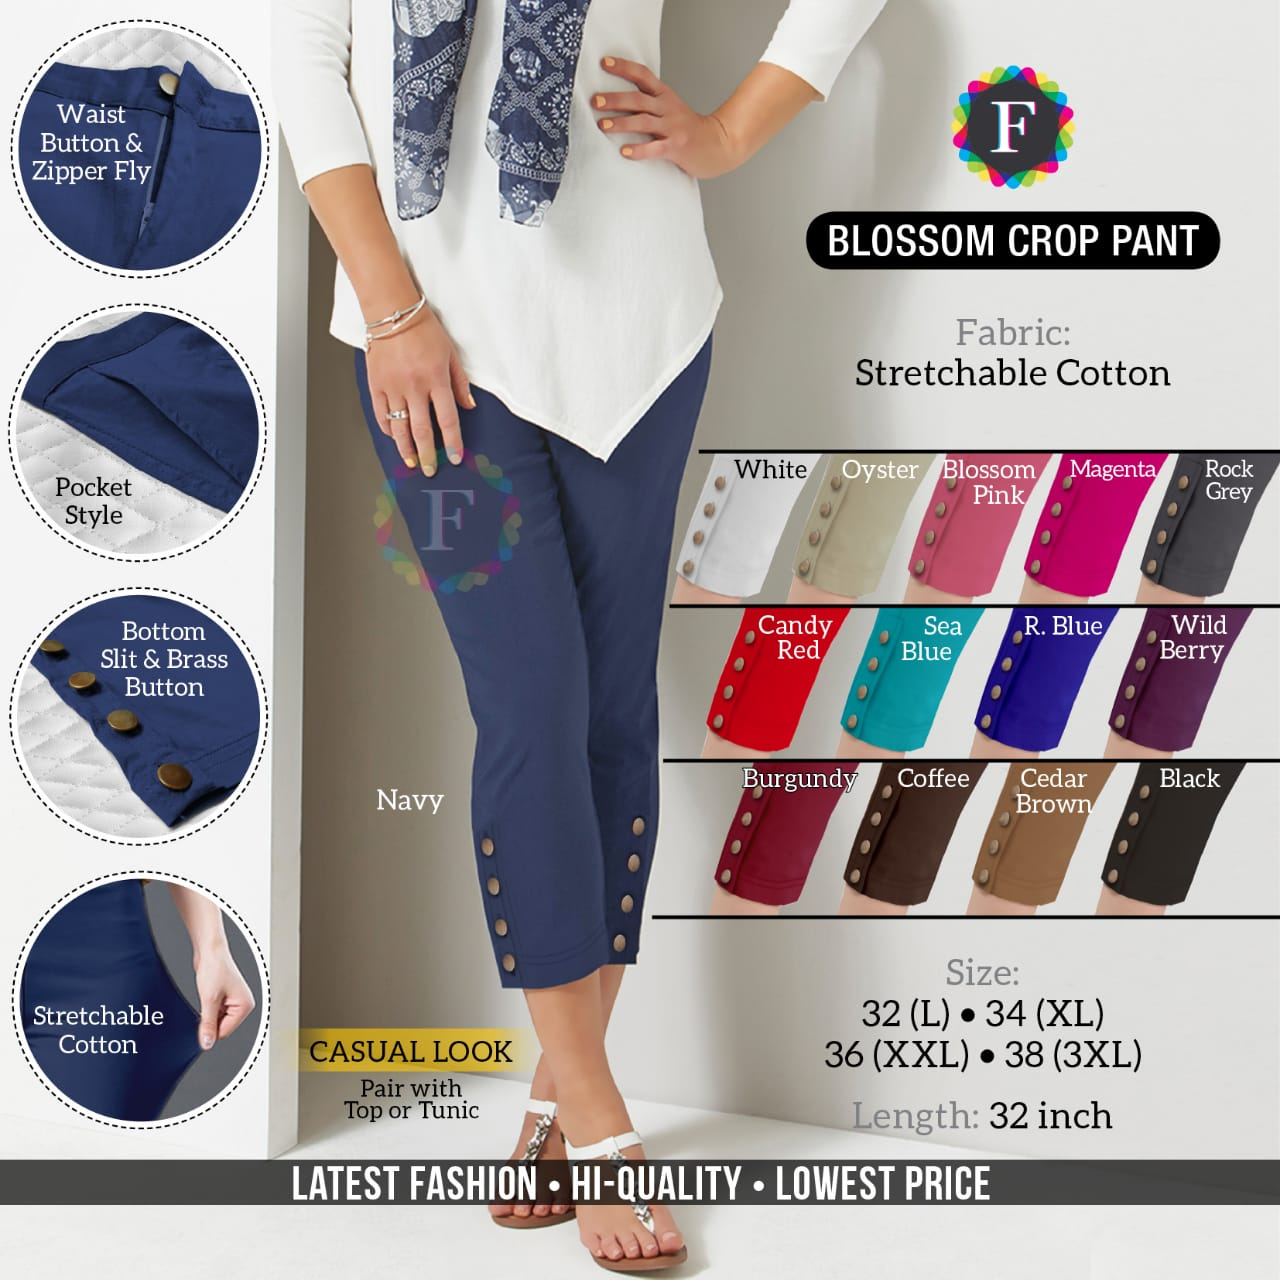 Blosson Crop Pant Stretchable Cotton Summer Bottom Pants Collection